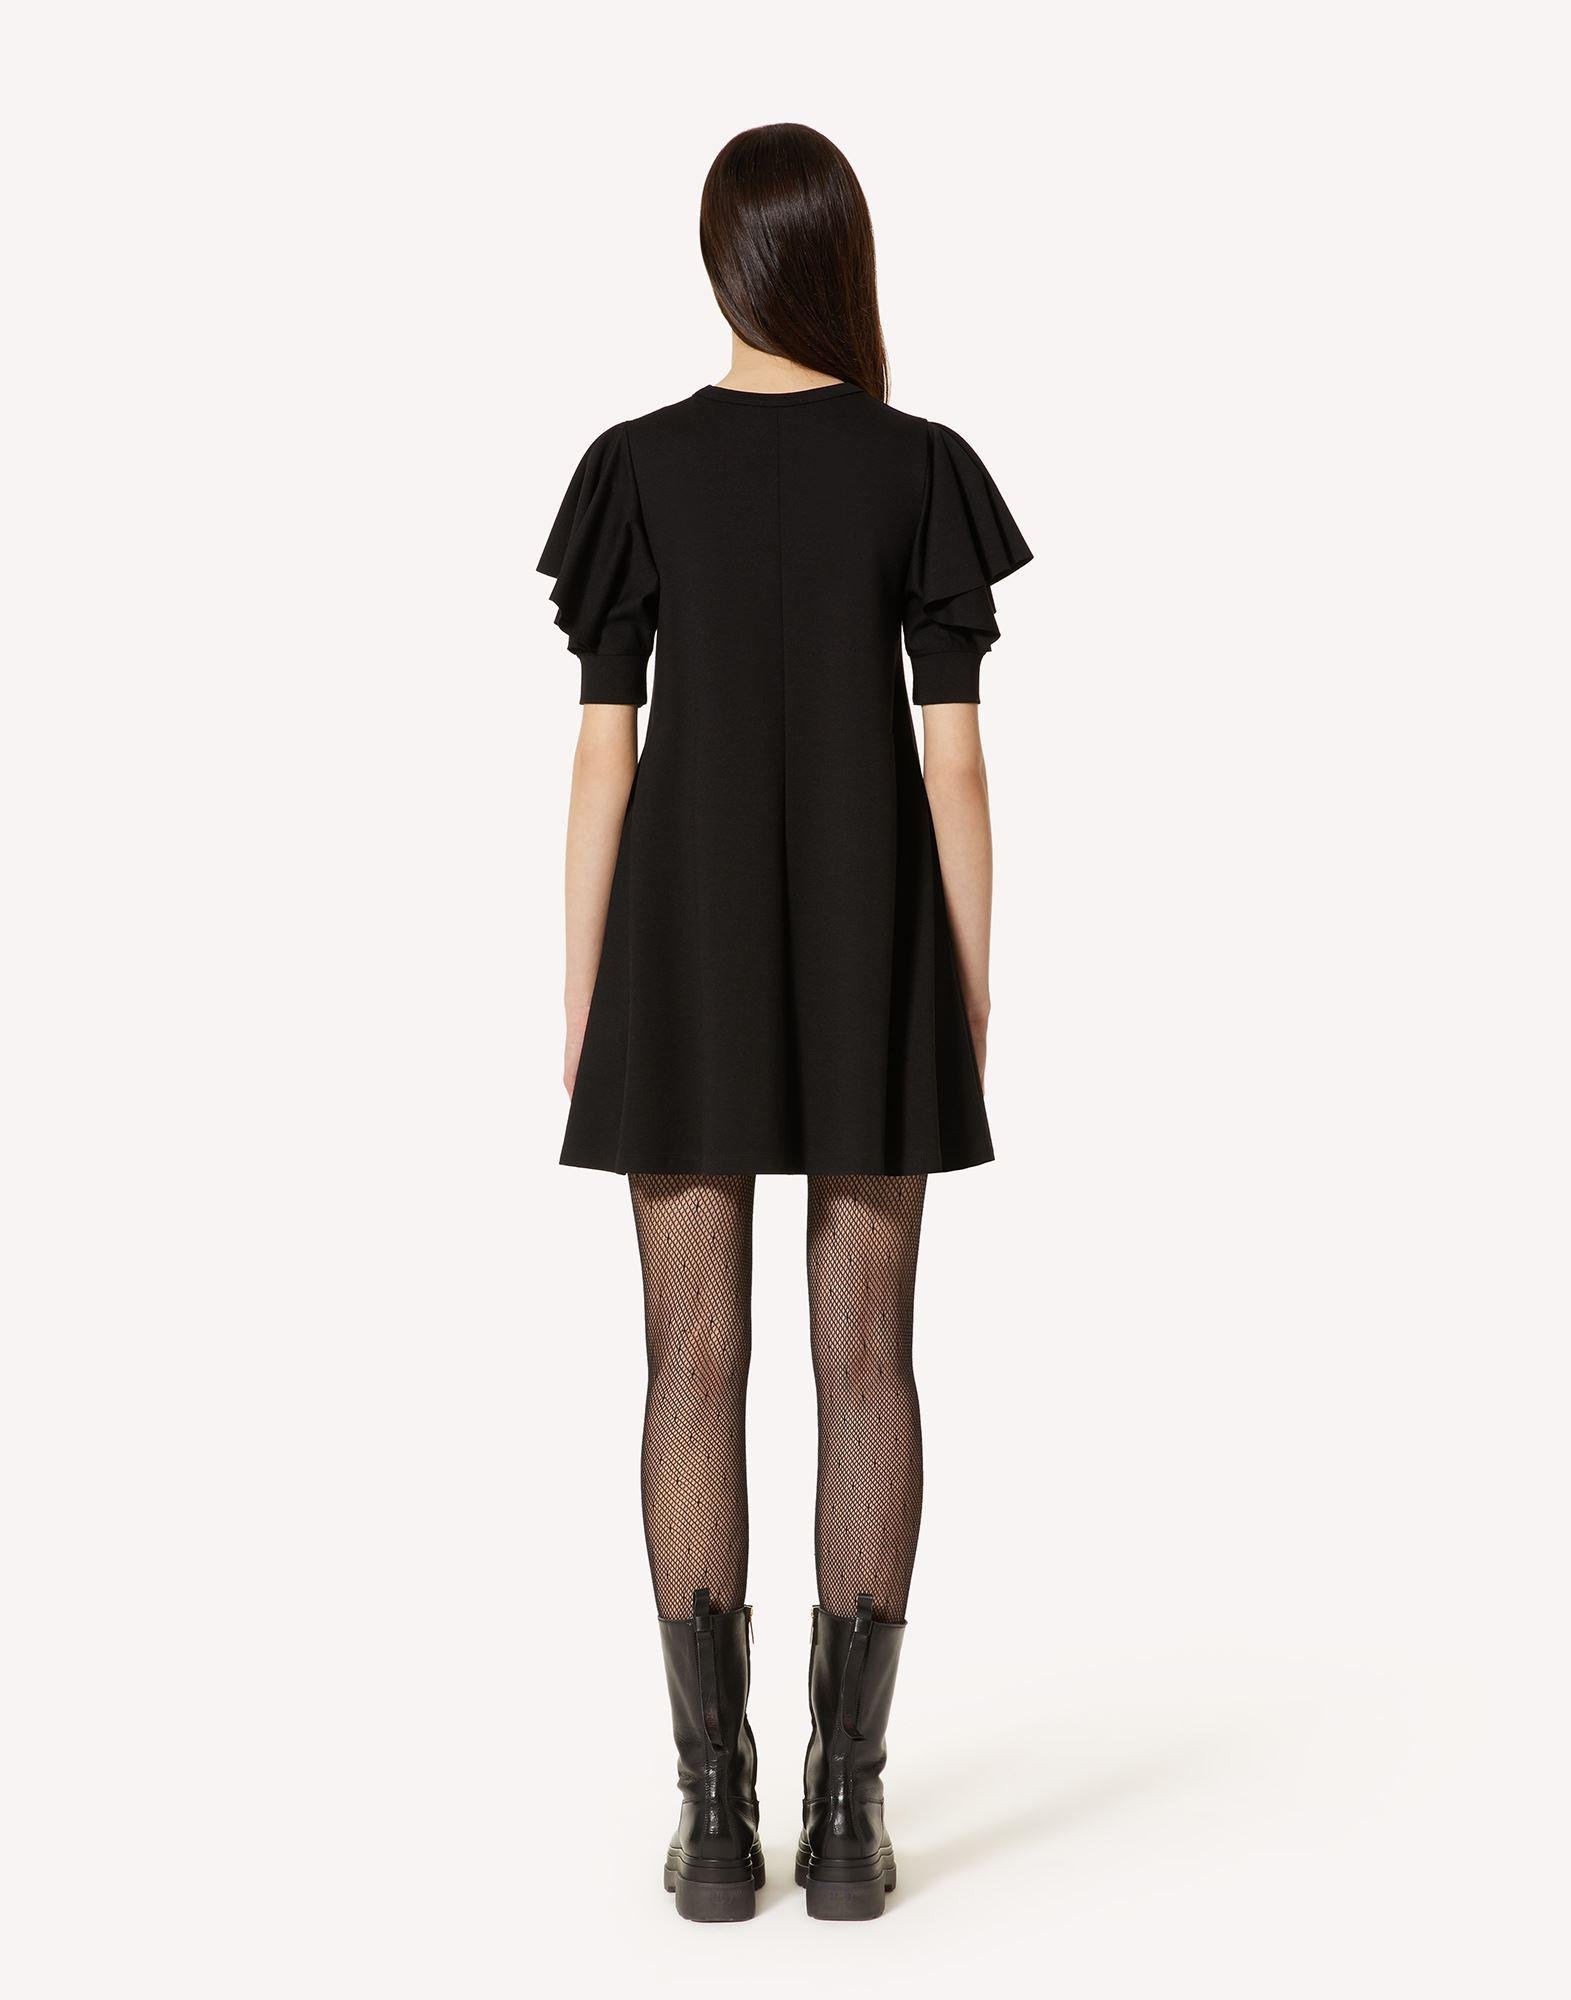 JERSEY DRESS WITH RUFFLE DETAIL 1